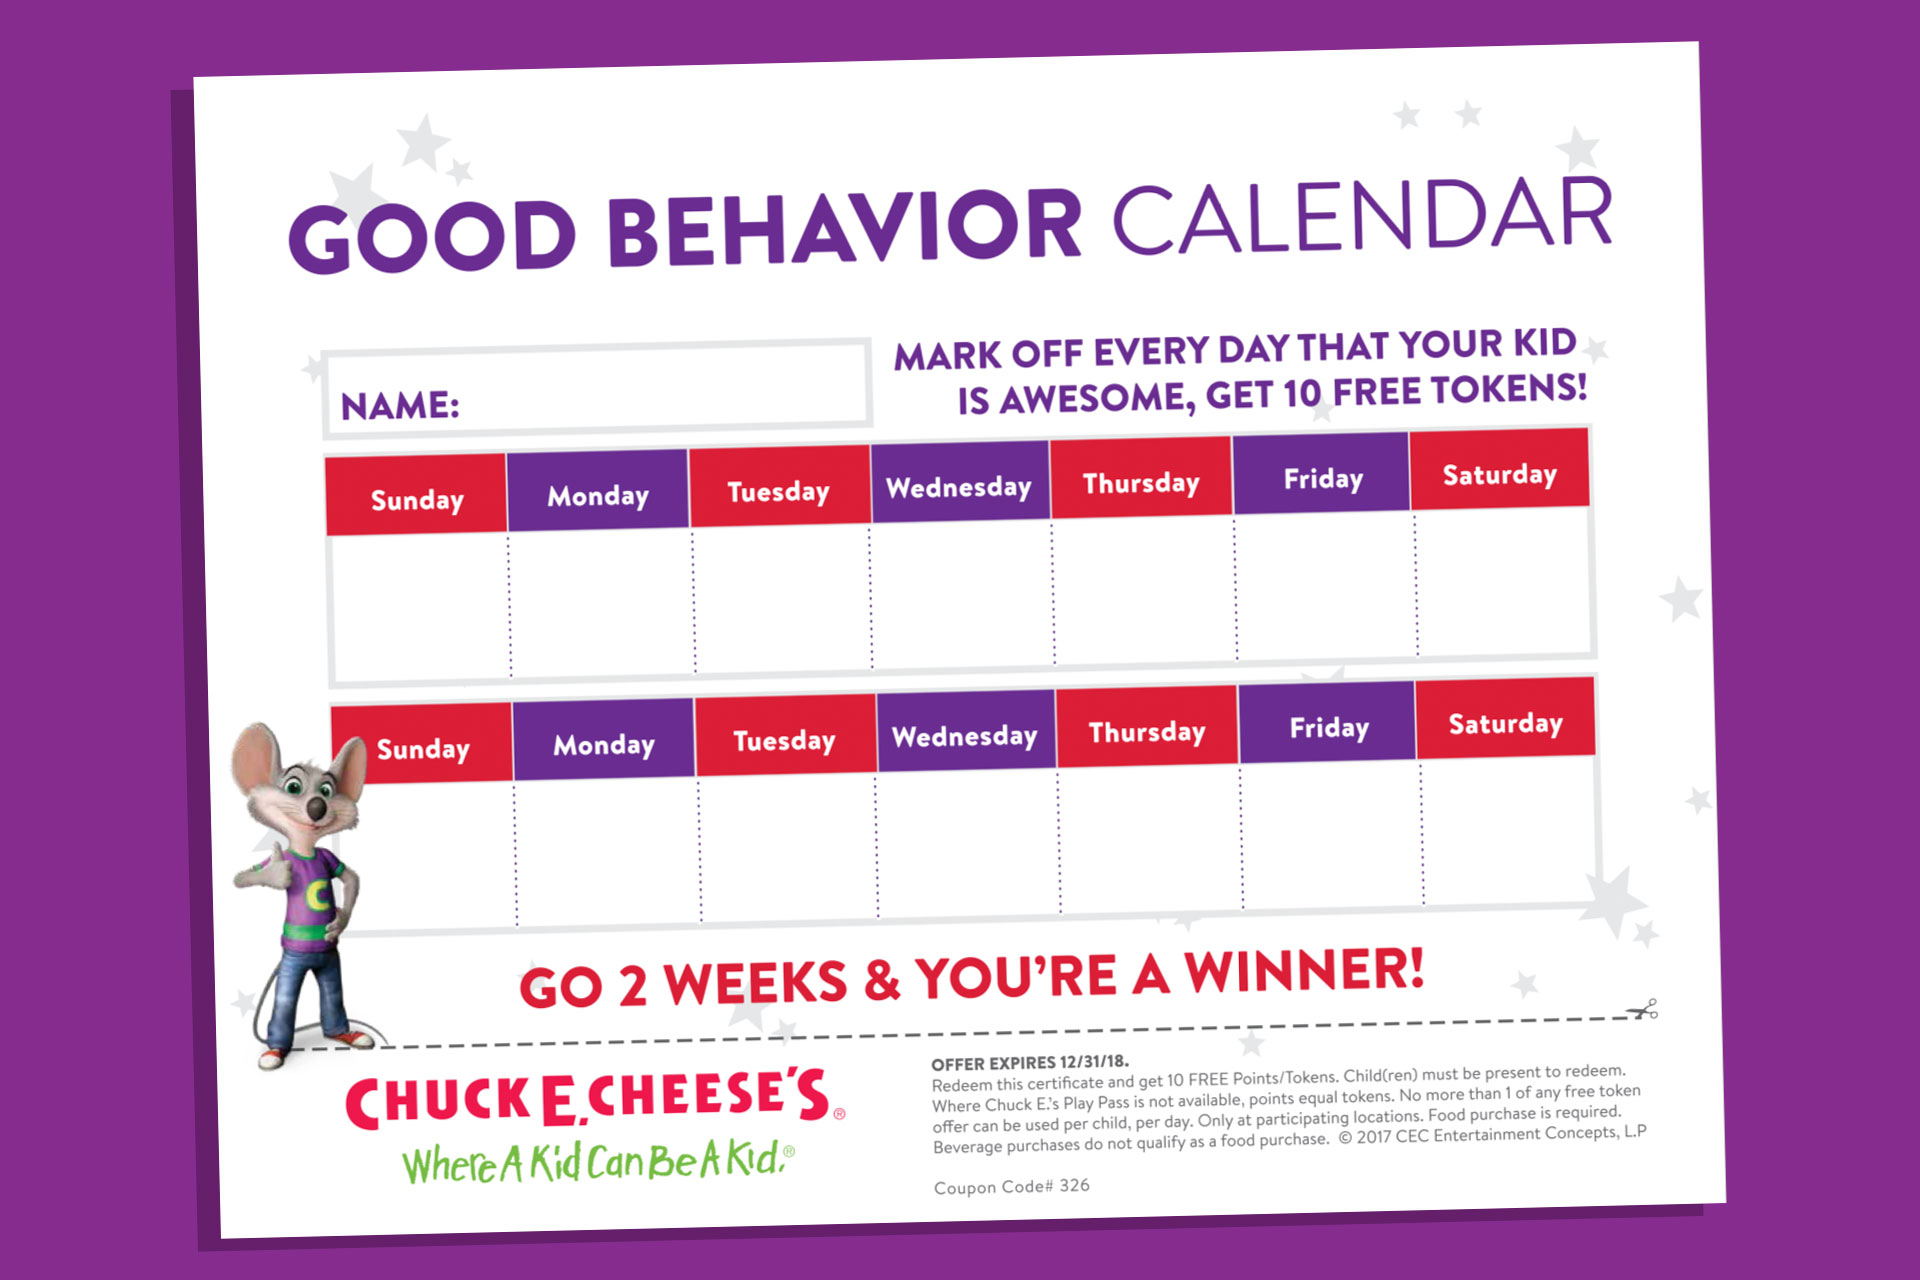 Good behavior calendar